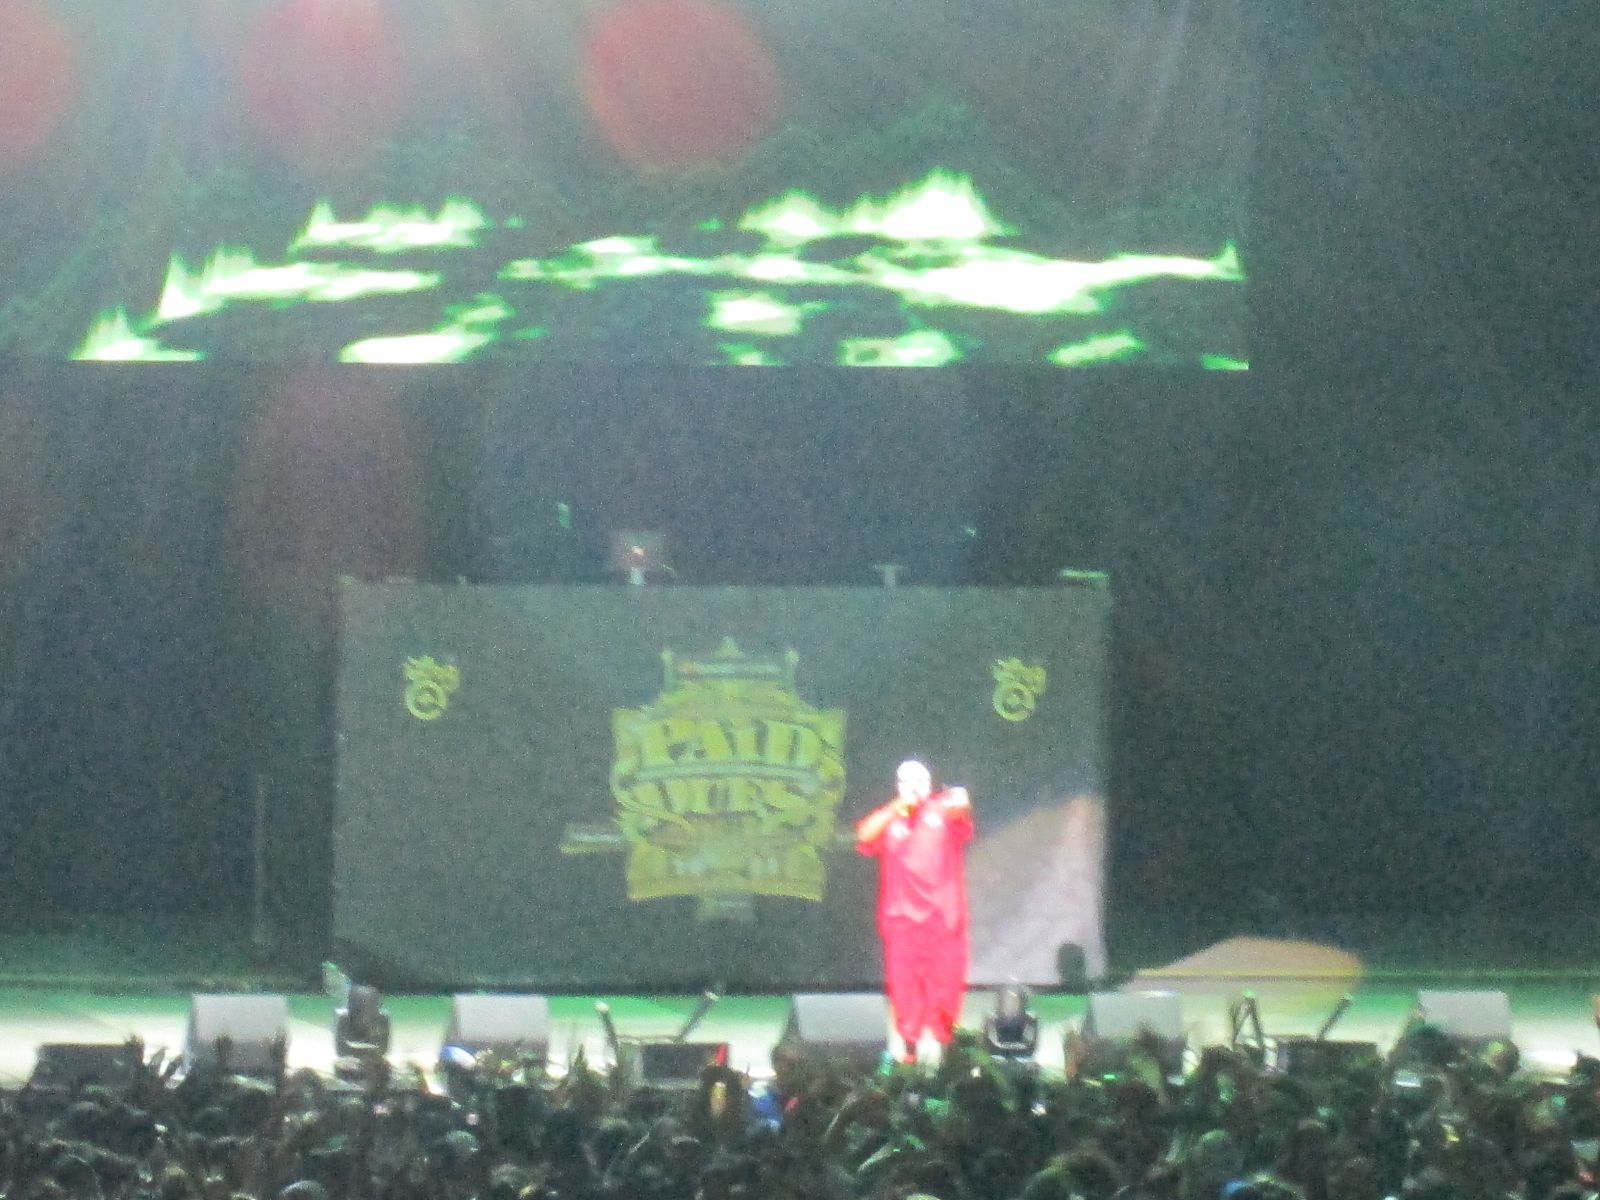 Paid Dues Tech N9ne